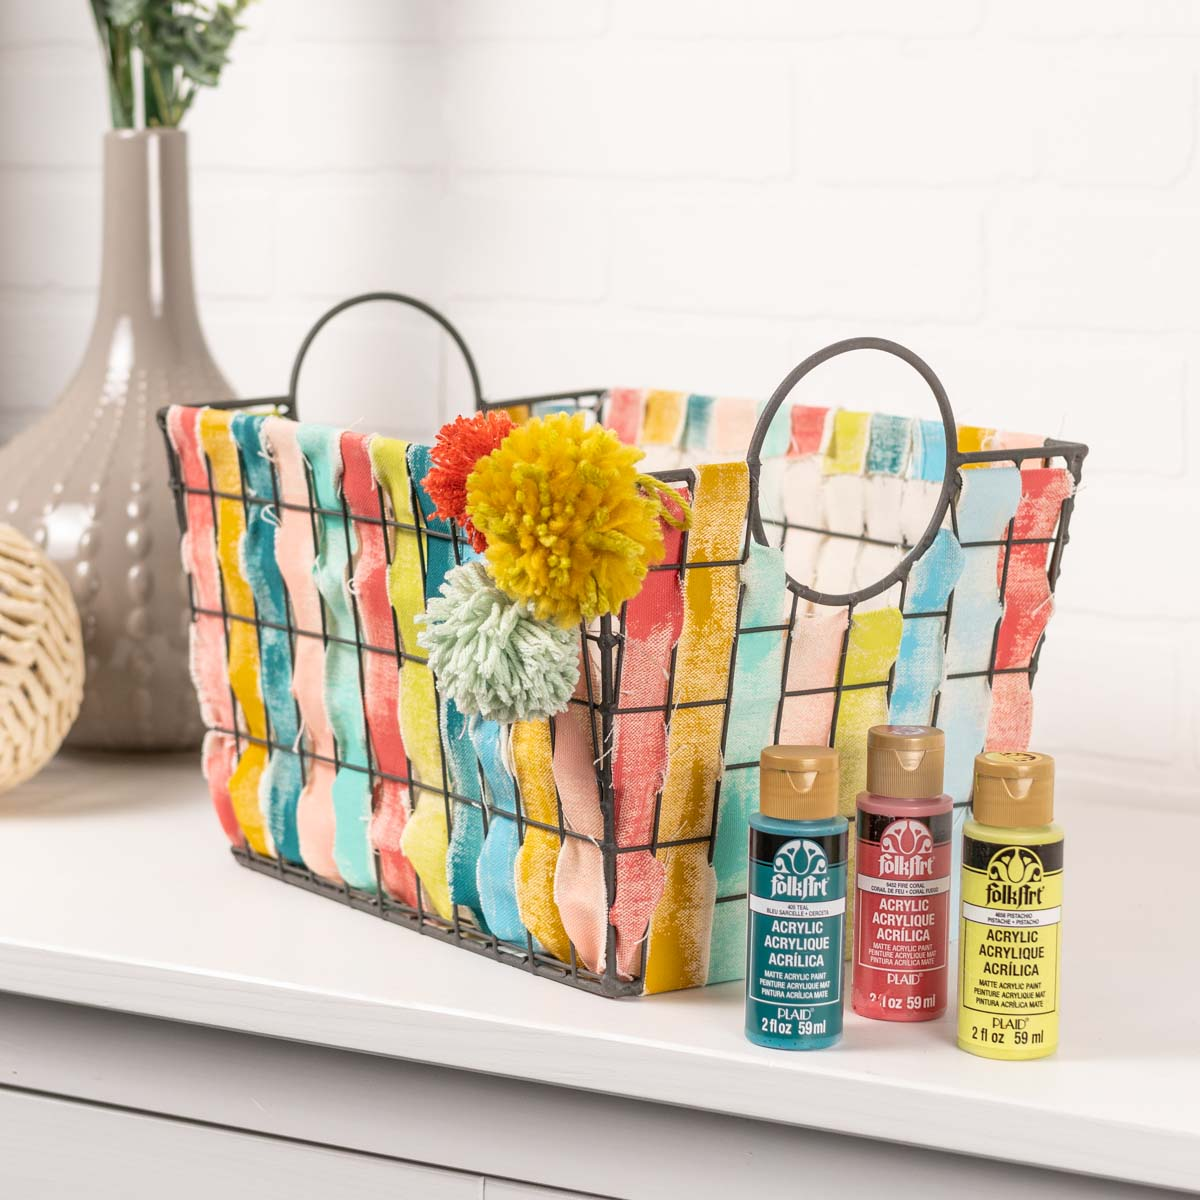 Metal Crate Threaded with Painted Fabric